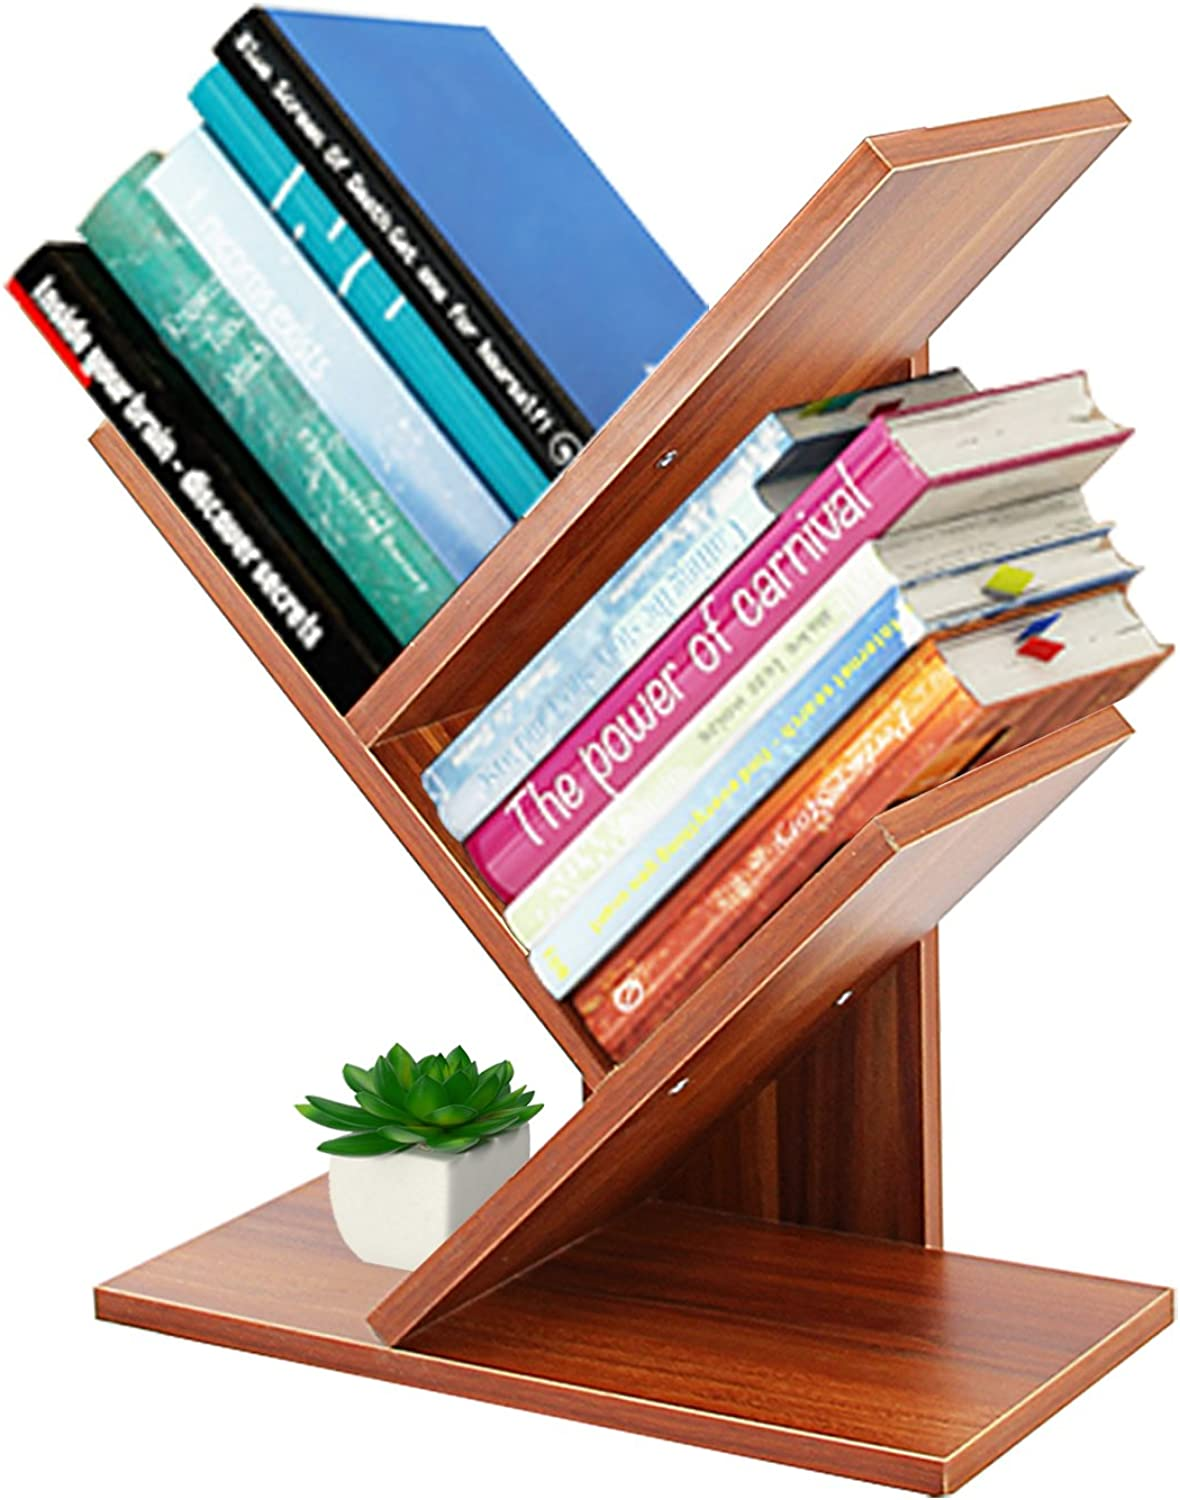 DL Furniture - 4 Tiers Tree Shaped Book Storage Organizer Freestanding Bookshelves   Natural Wood